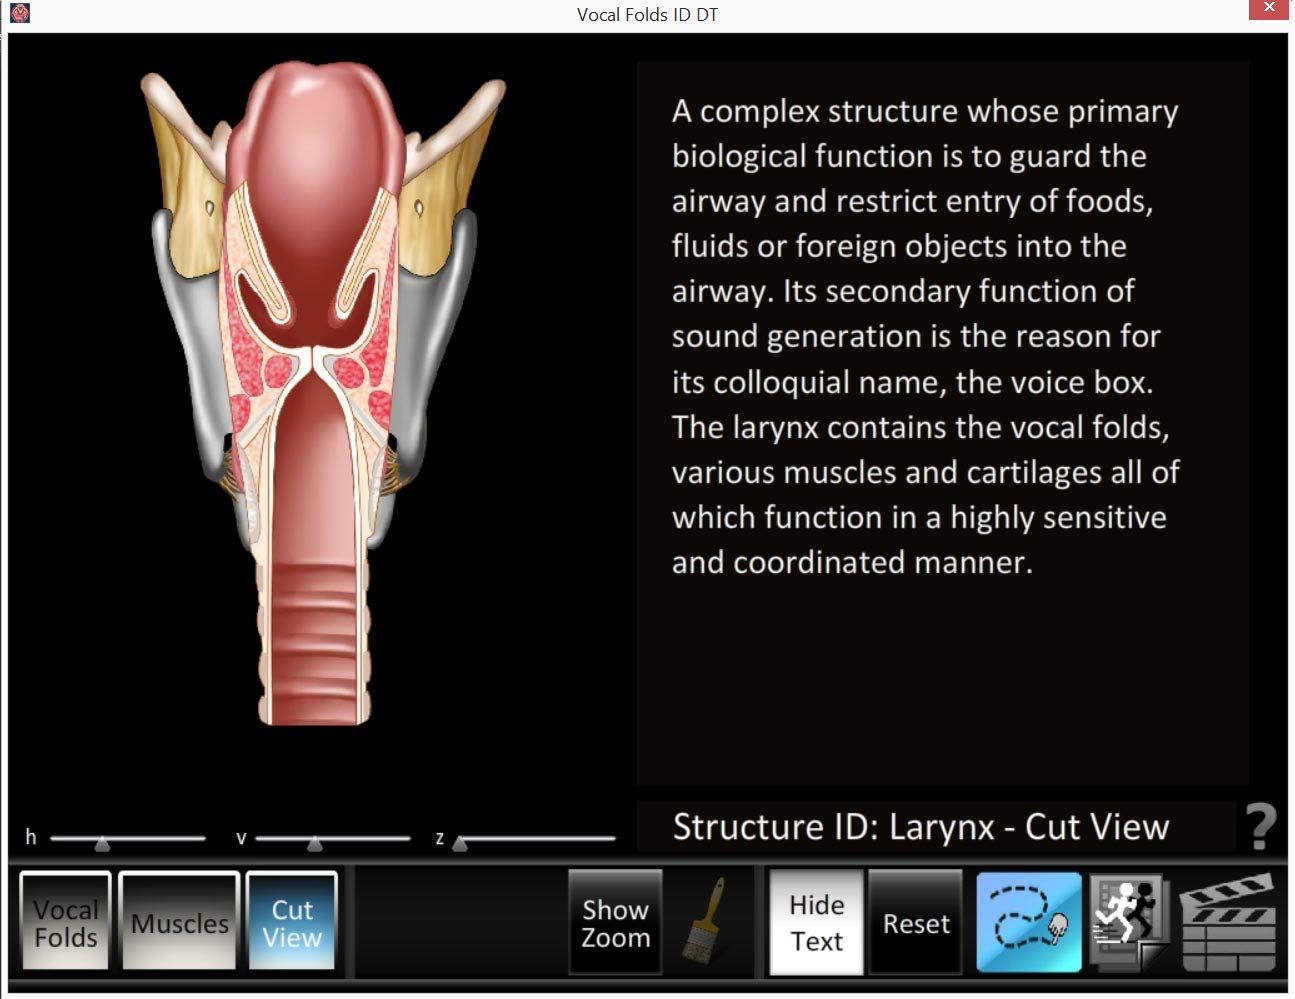 Larynx Poster with Software Larynx and Vocal Fold ID Speech